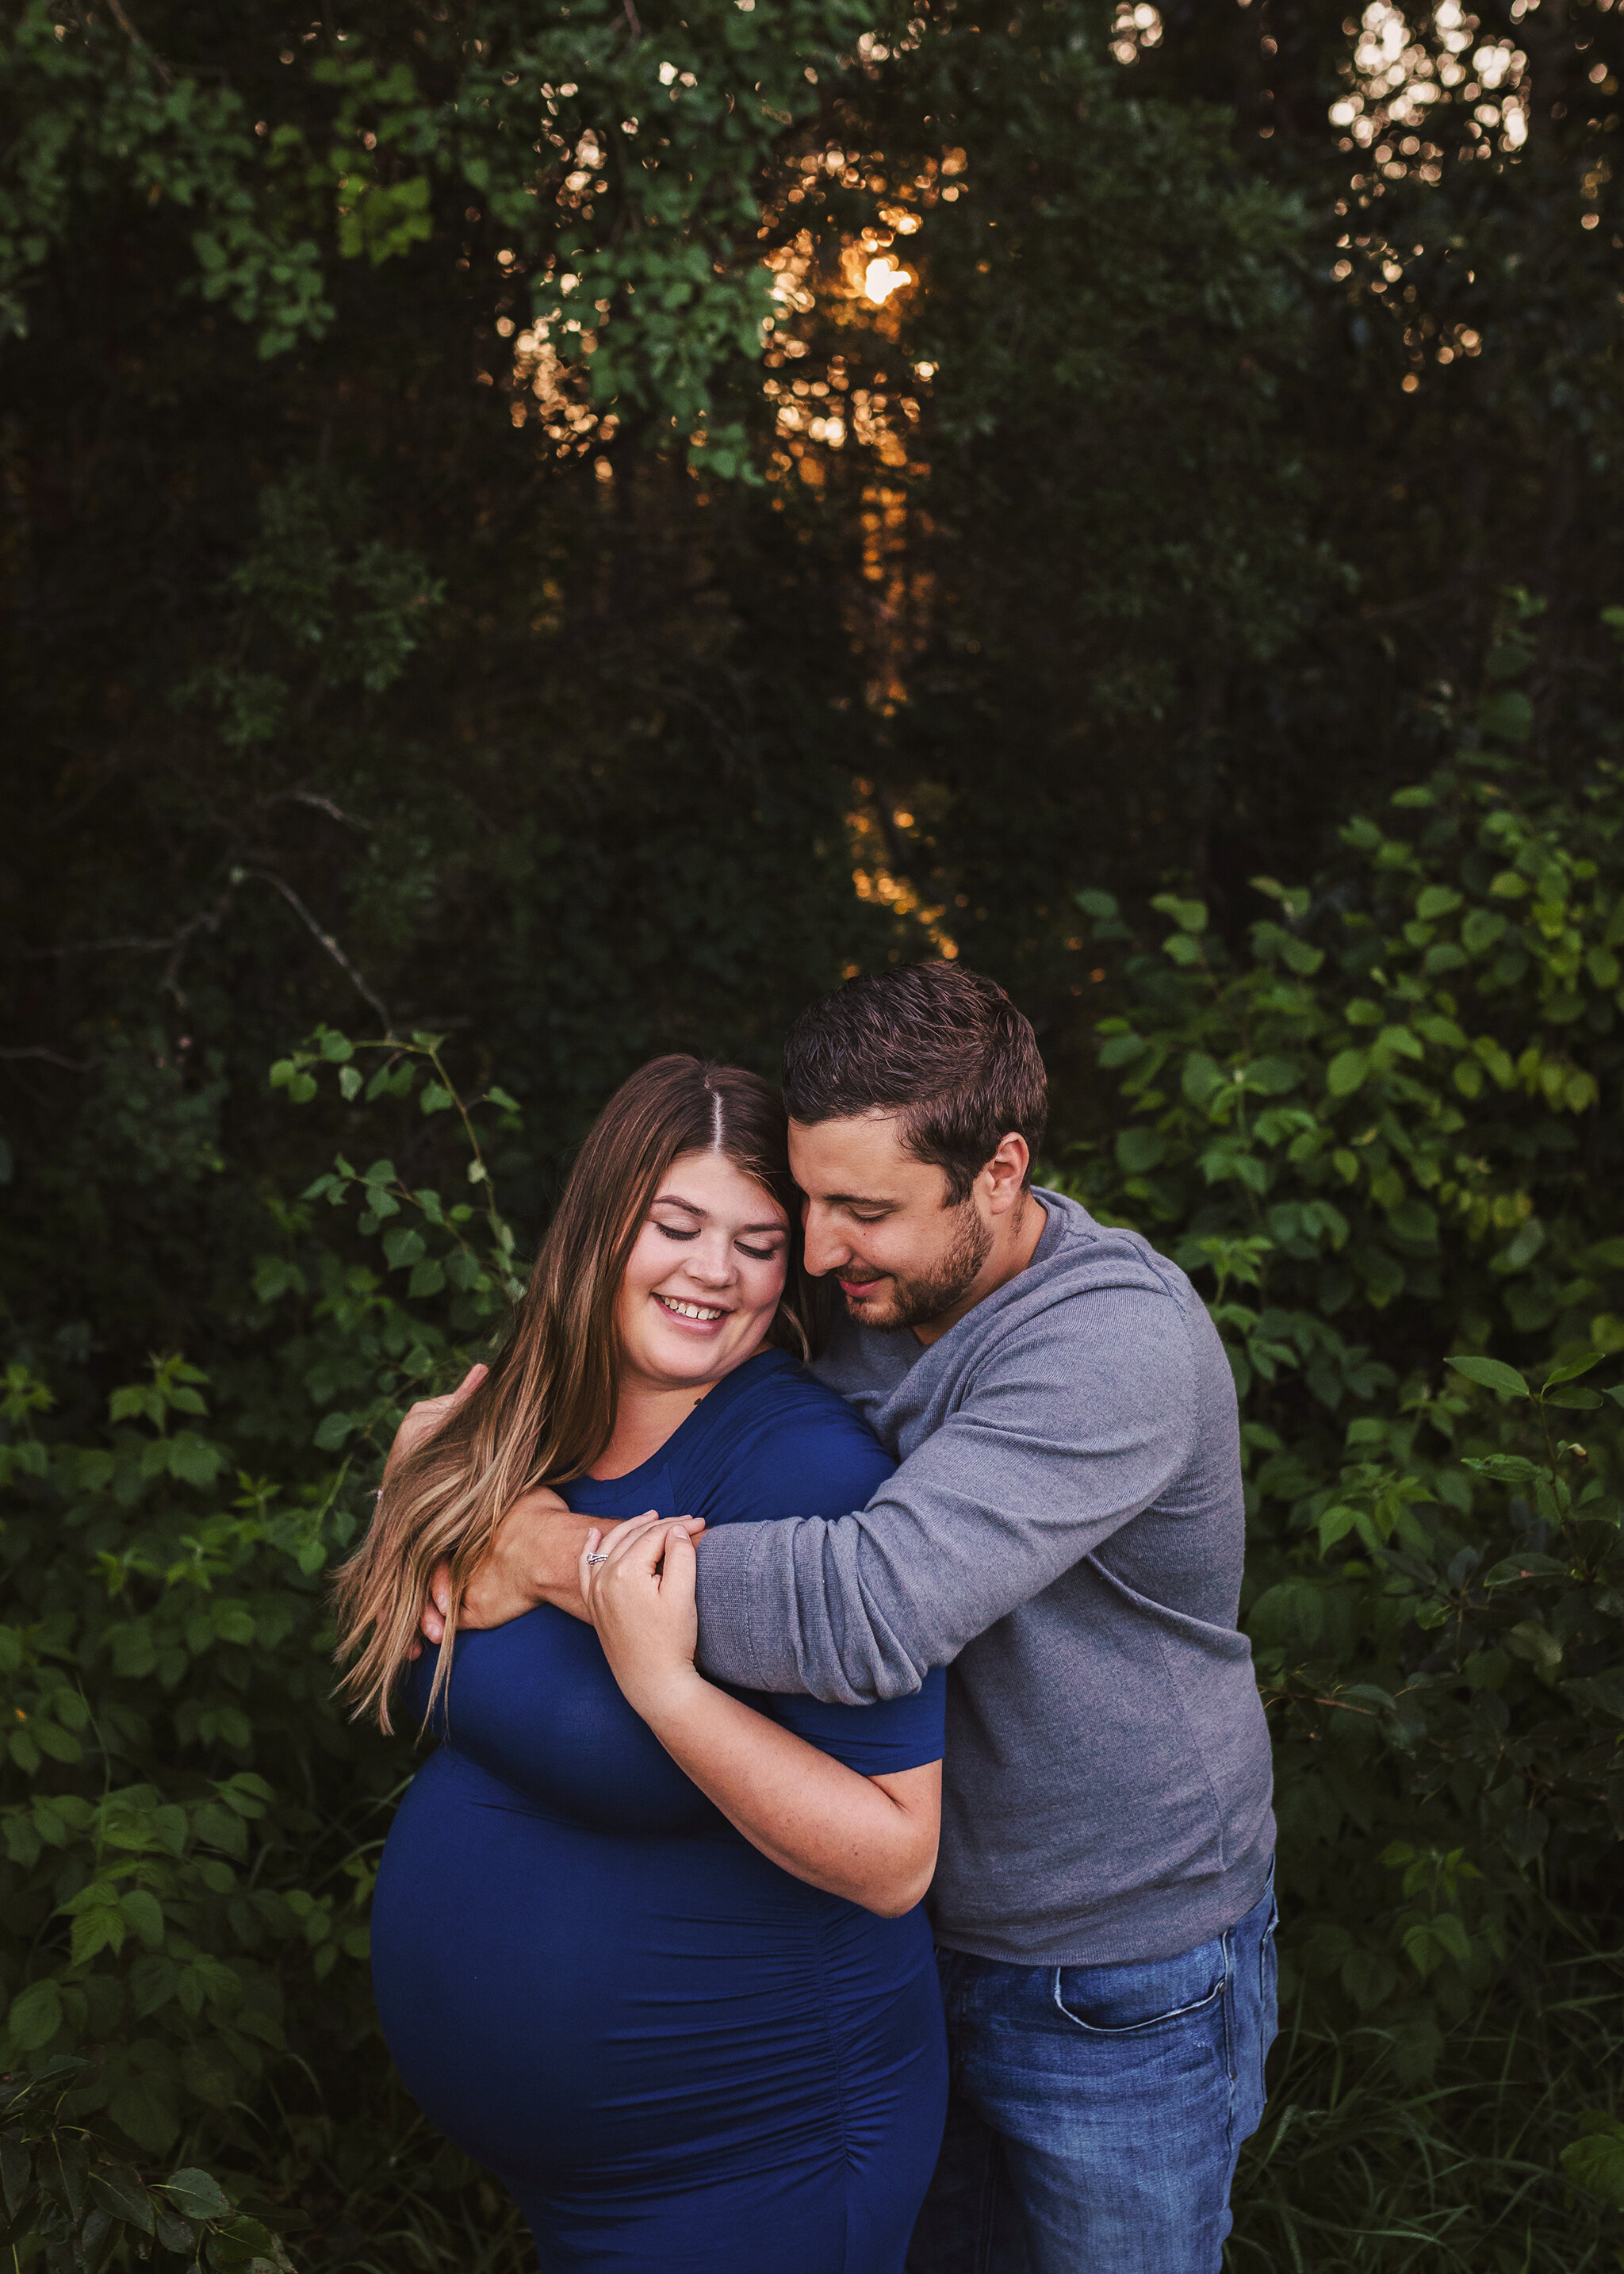 Edmonton Maternity and Newborn Photographer_Baby Bennett M 3.jpg